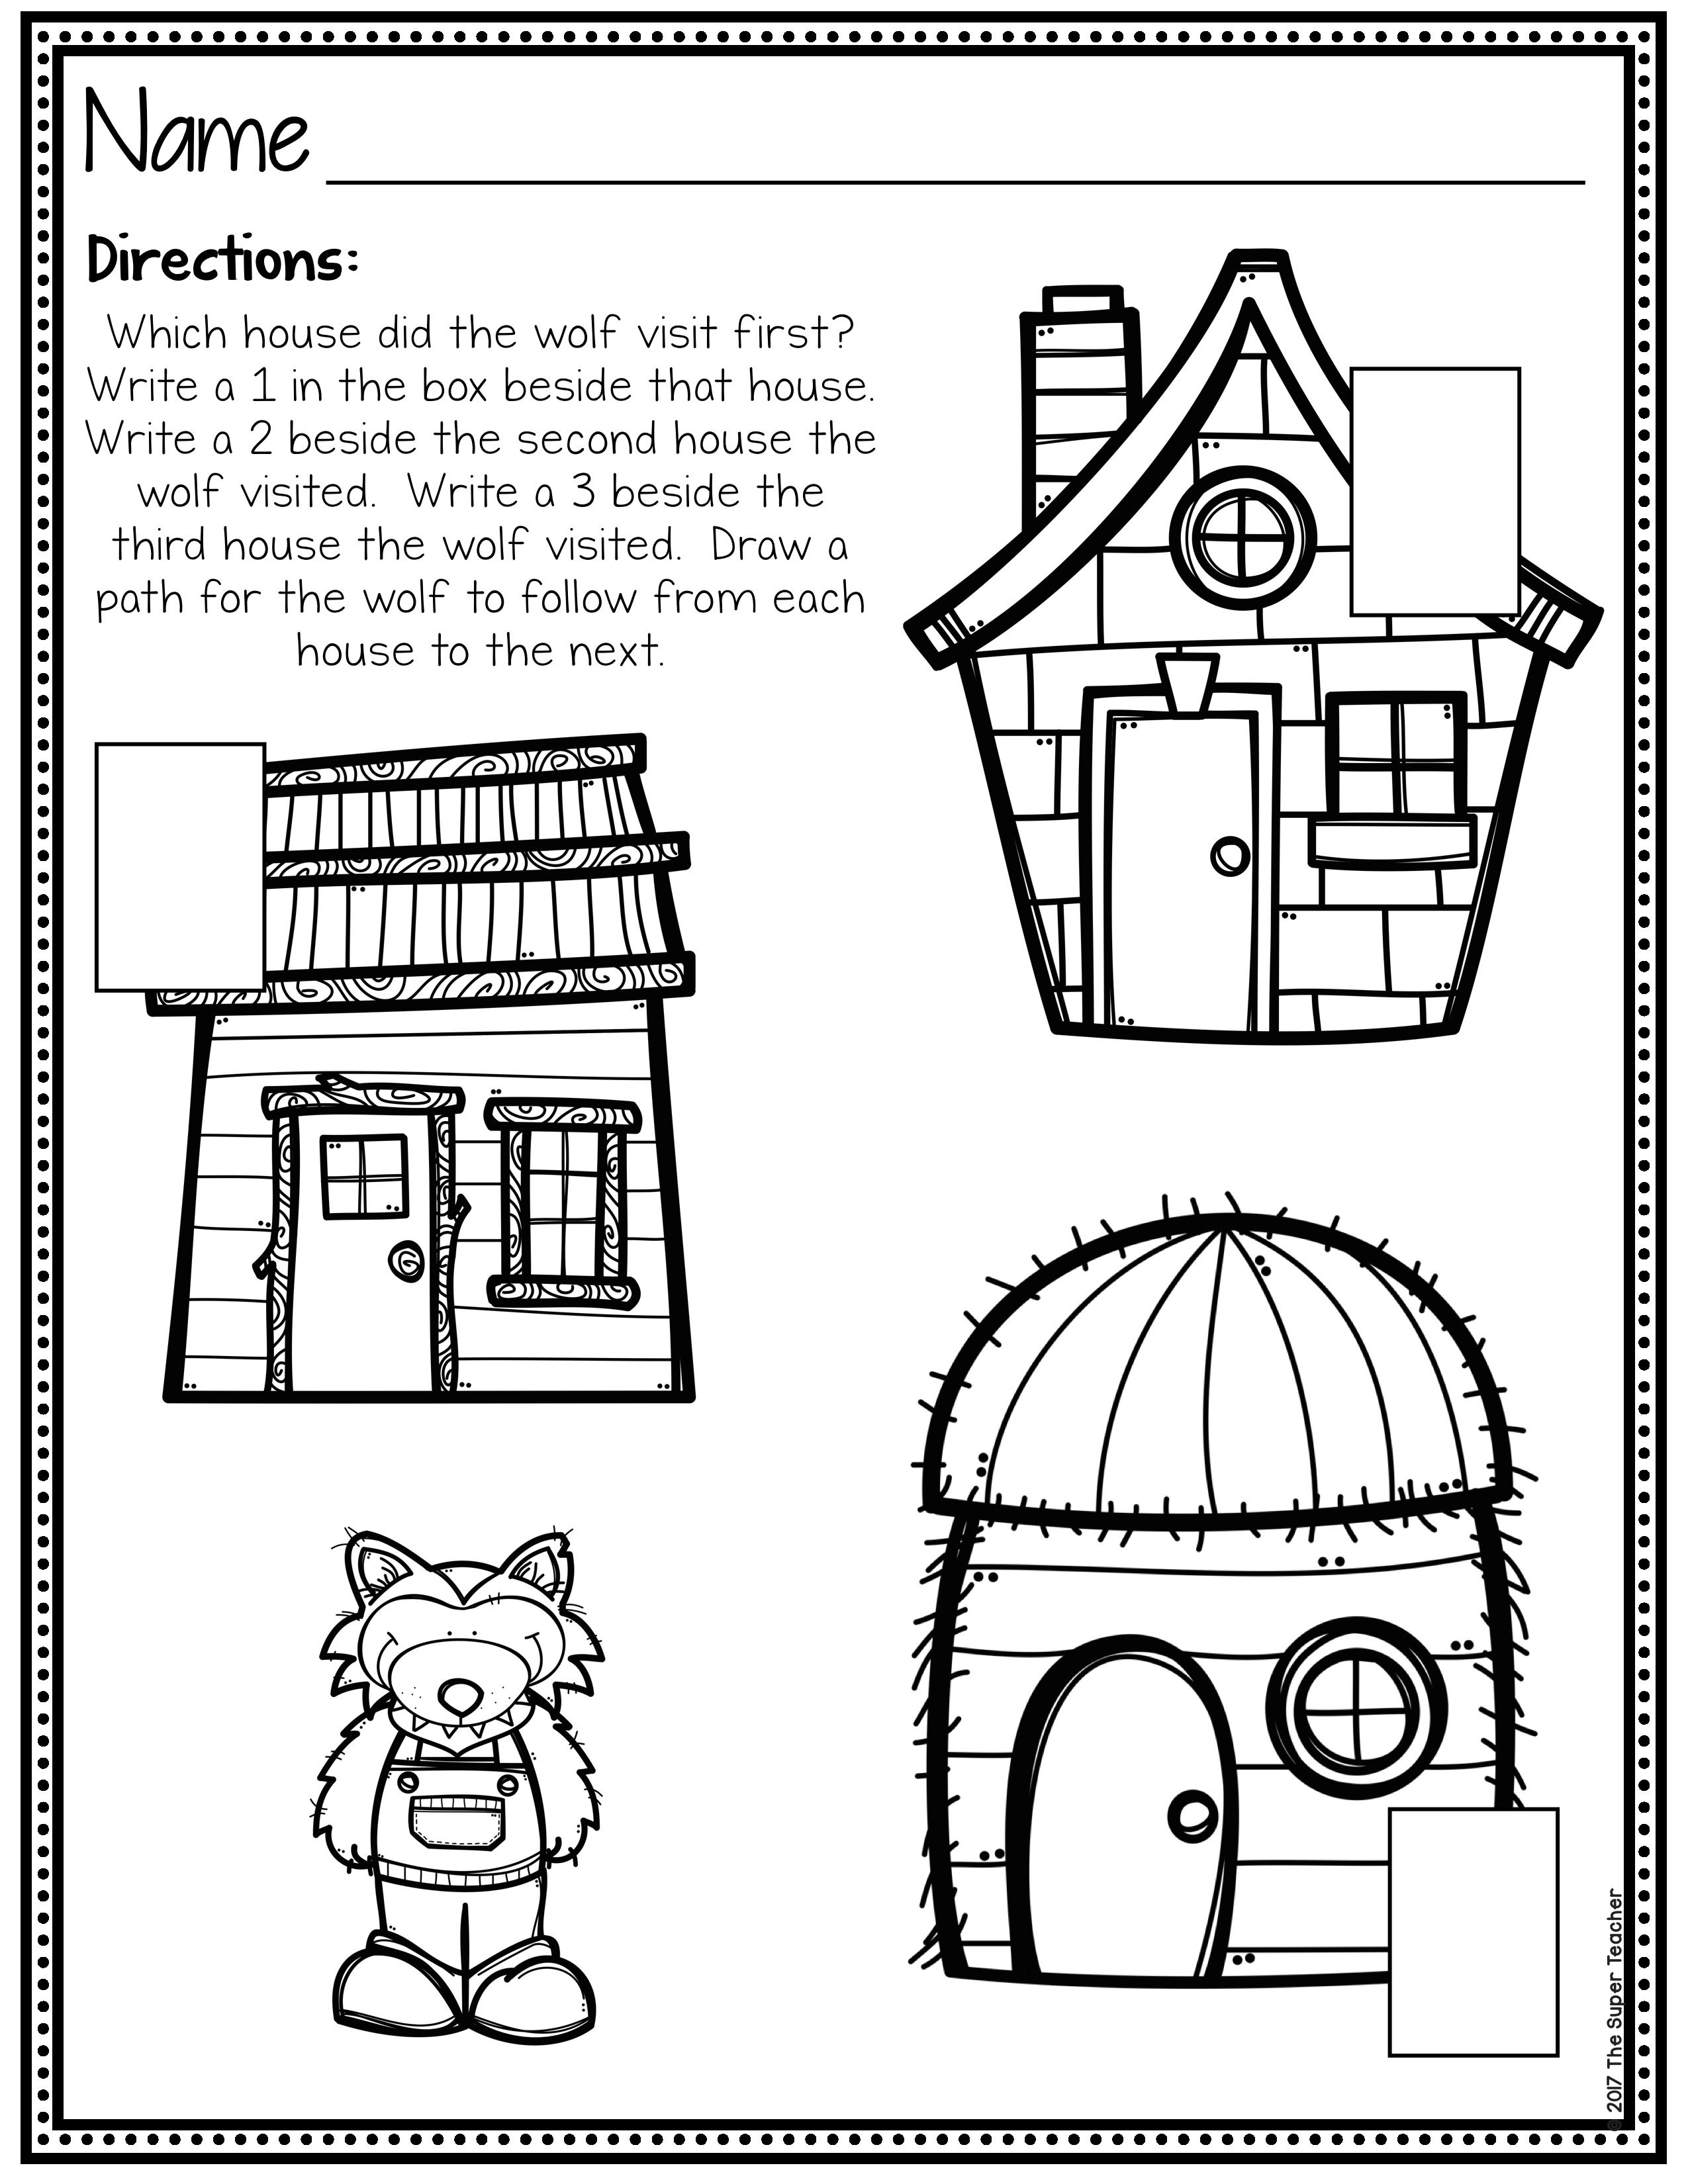 image about Three Little Pigs Printable titled 3 Minor Pigs Tale Products and Tale Retelling Worksheets